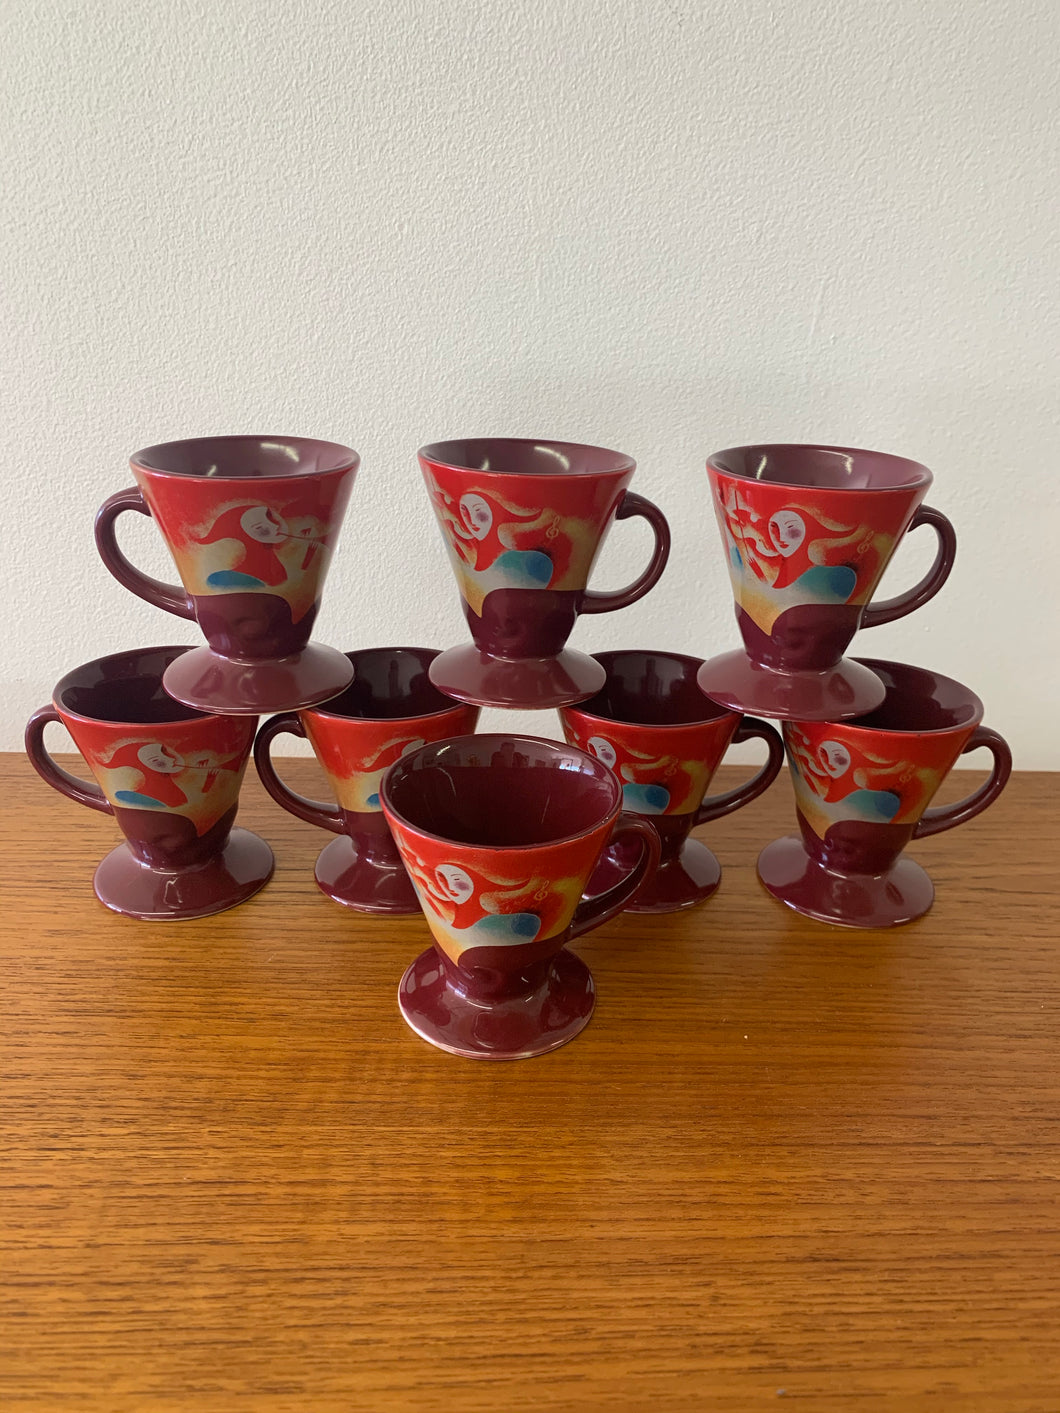 Vintage Liqueur or Espresso Cups by Linda Fritchel